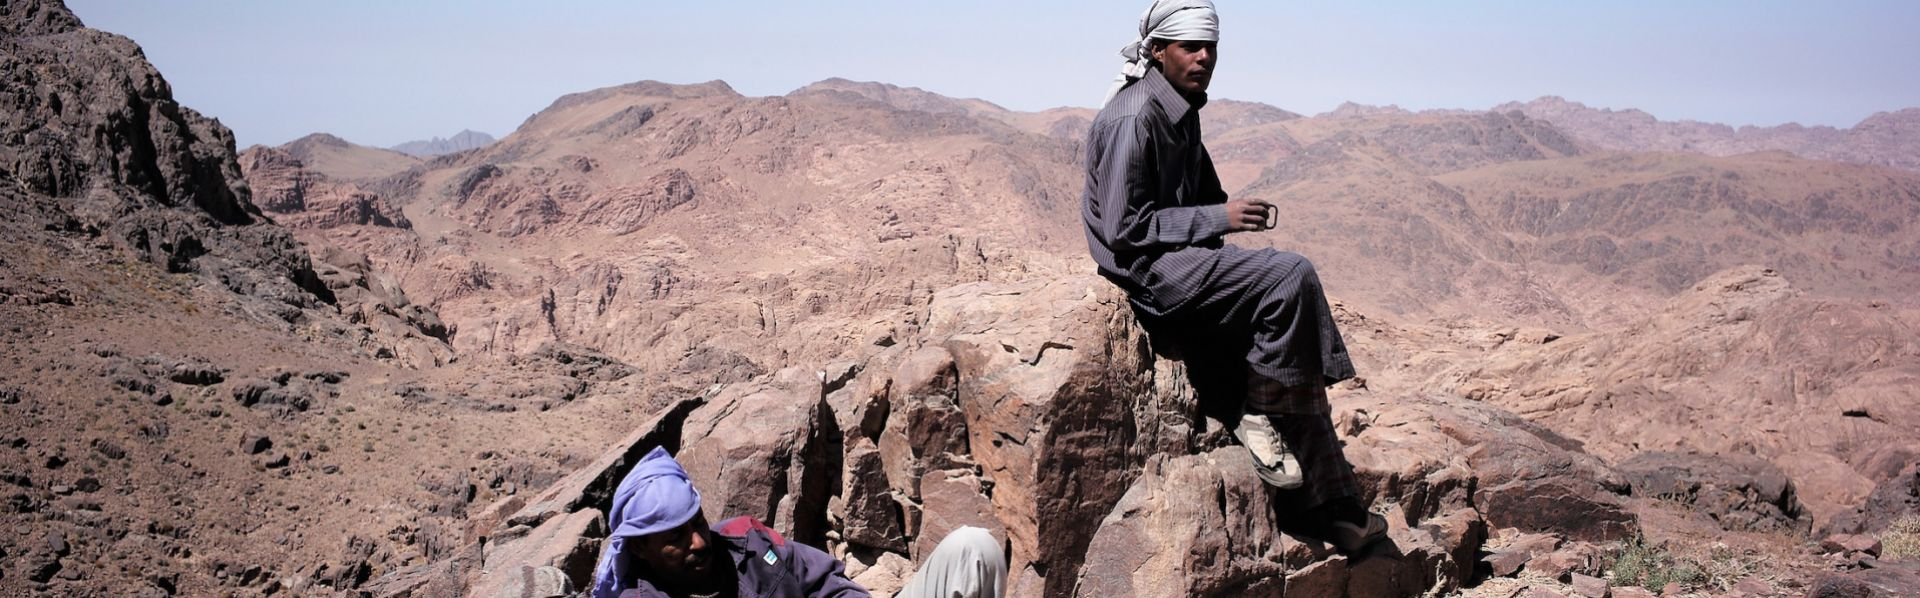 The Sinai Bedouins: An Enemy of Egypt's Own Making